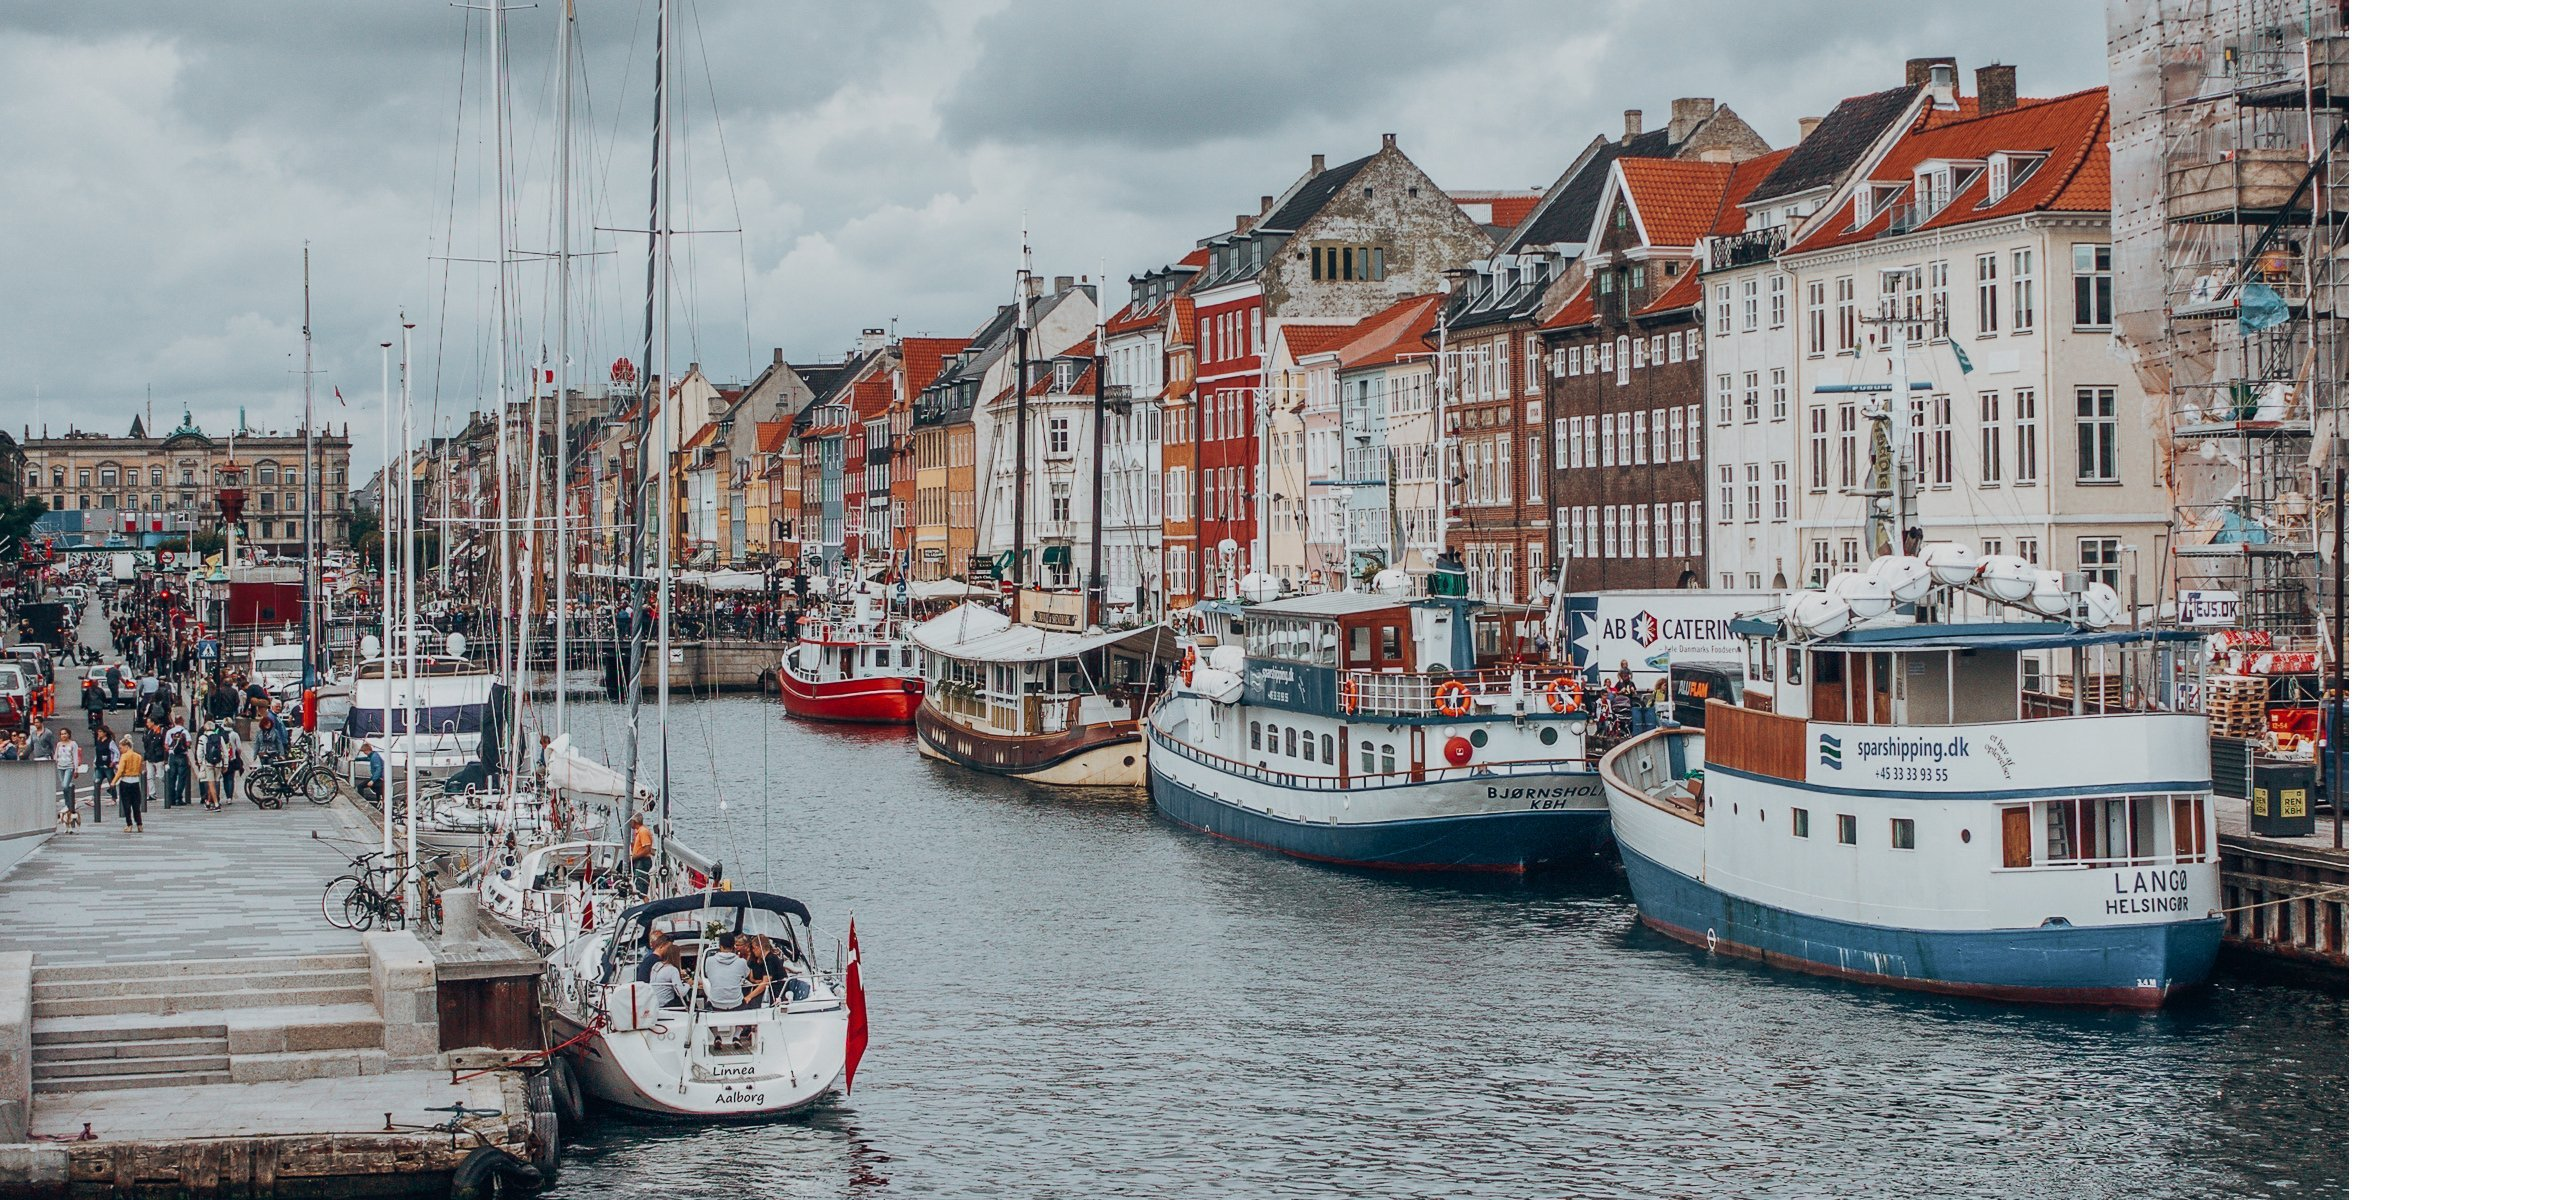 2 Days In Copenhagen Itinerary | See, Eat, Sleep, Shop